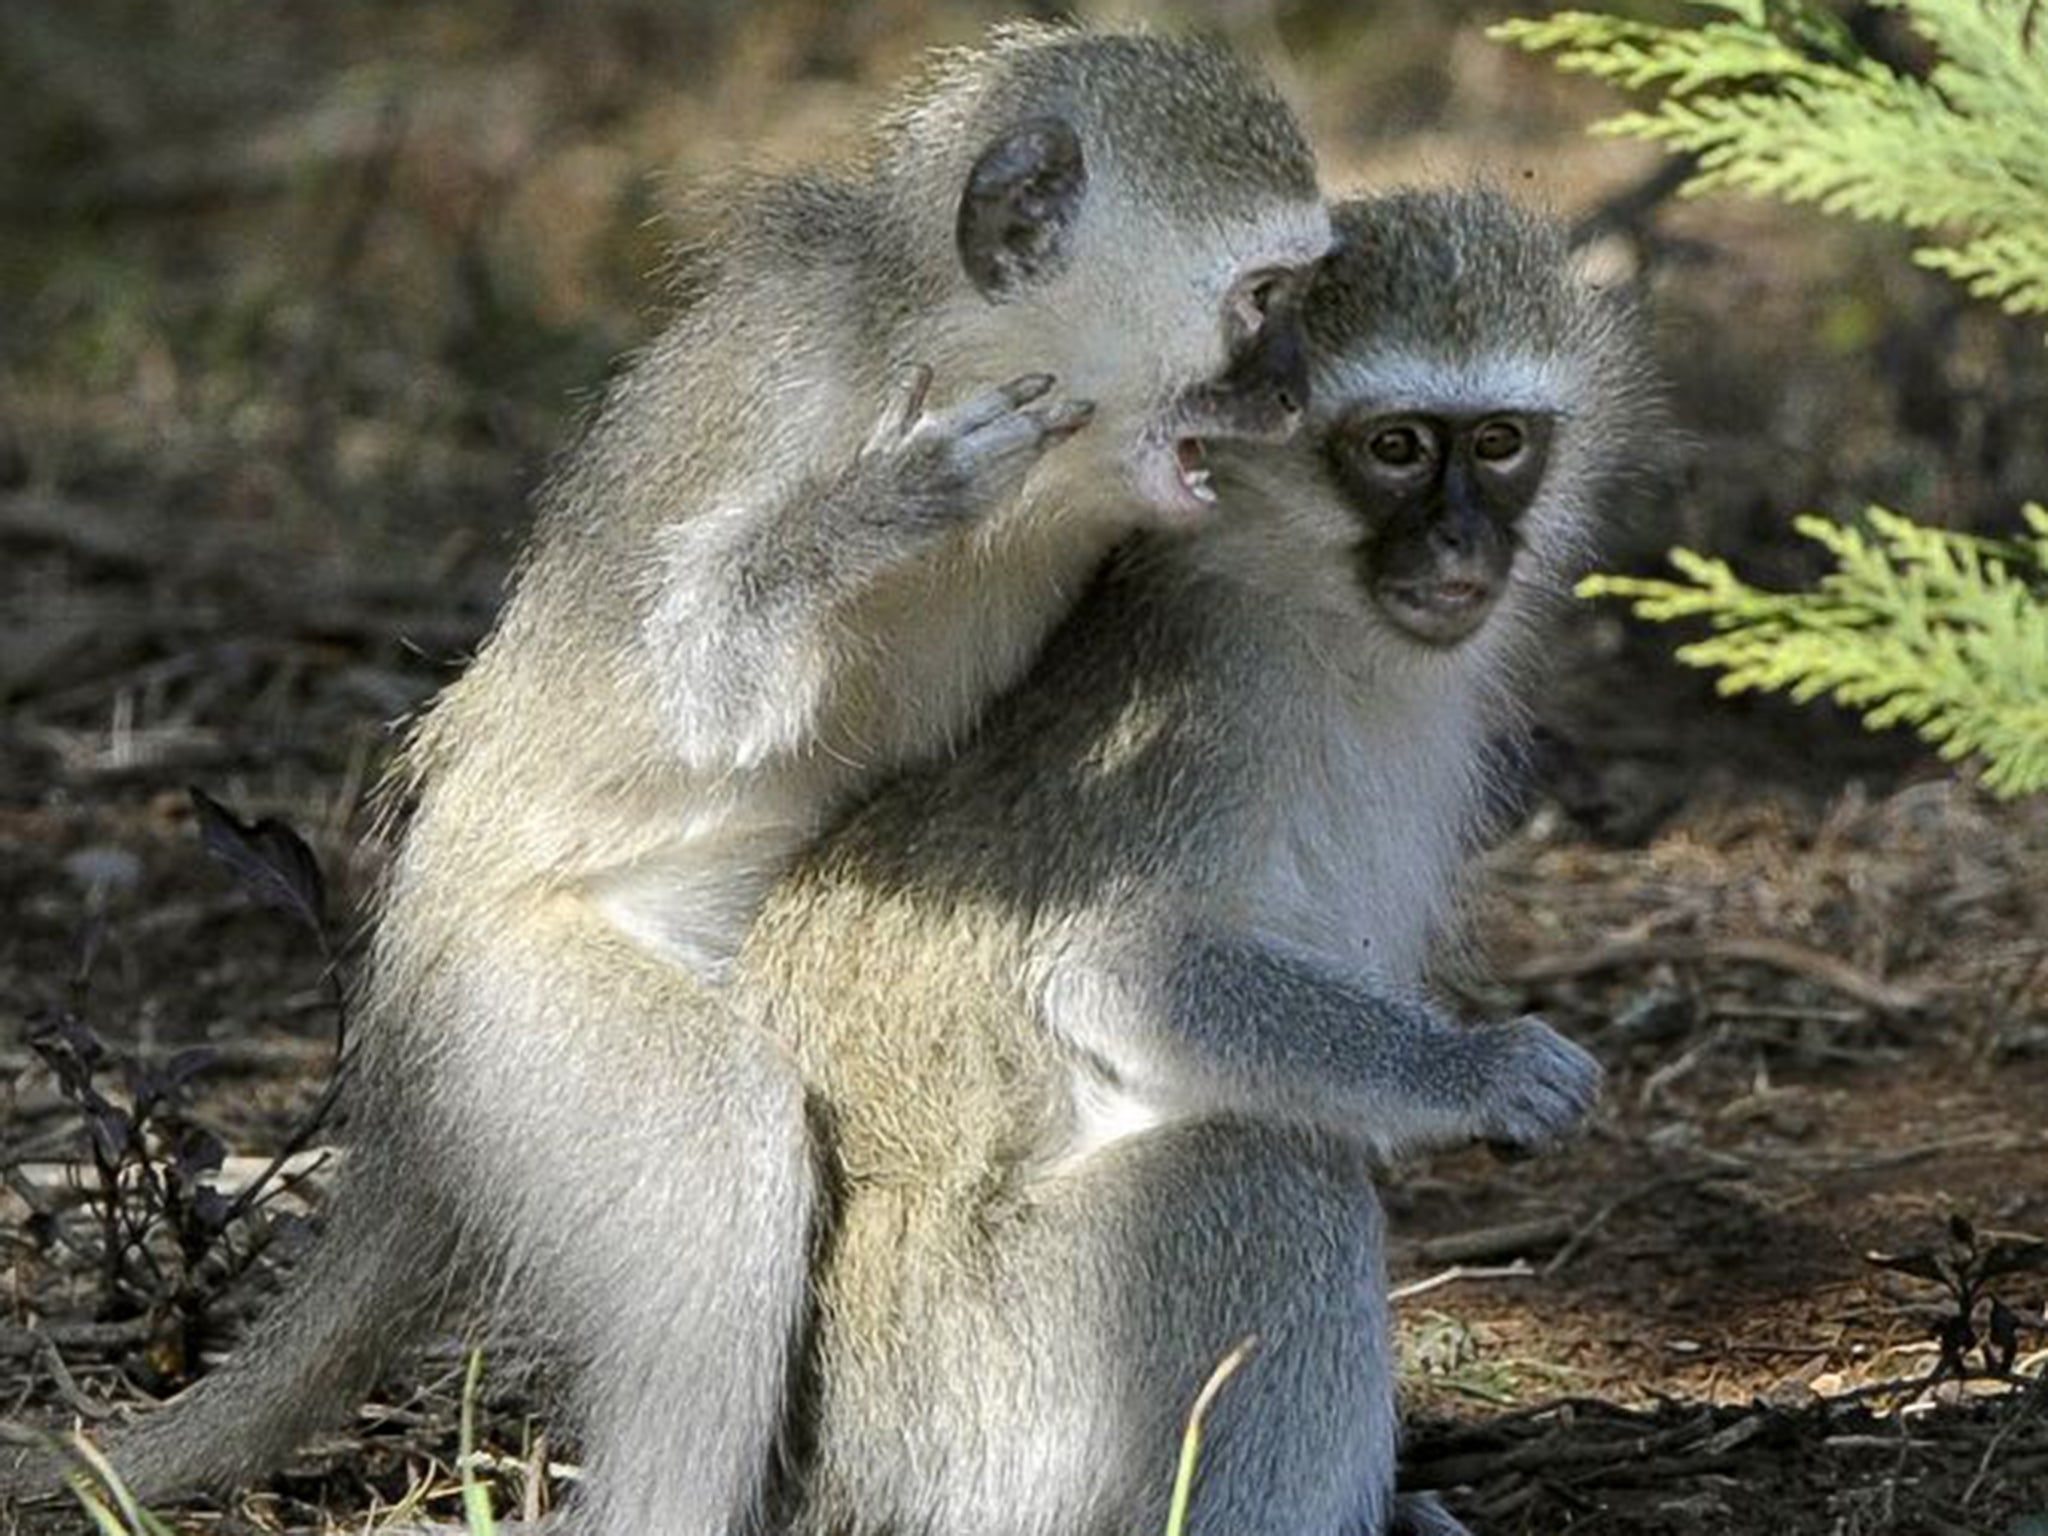 How animals communicate with each other: 5 most amazing ways